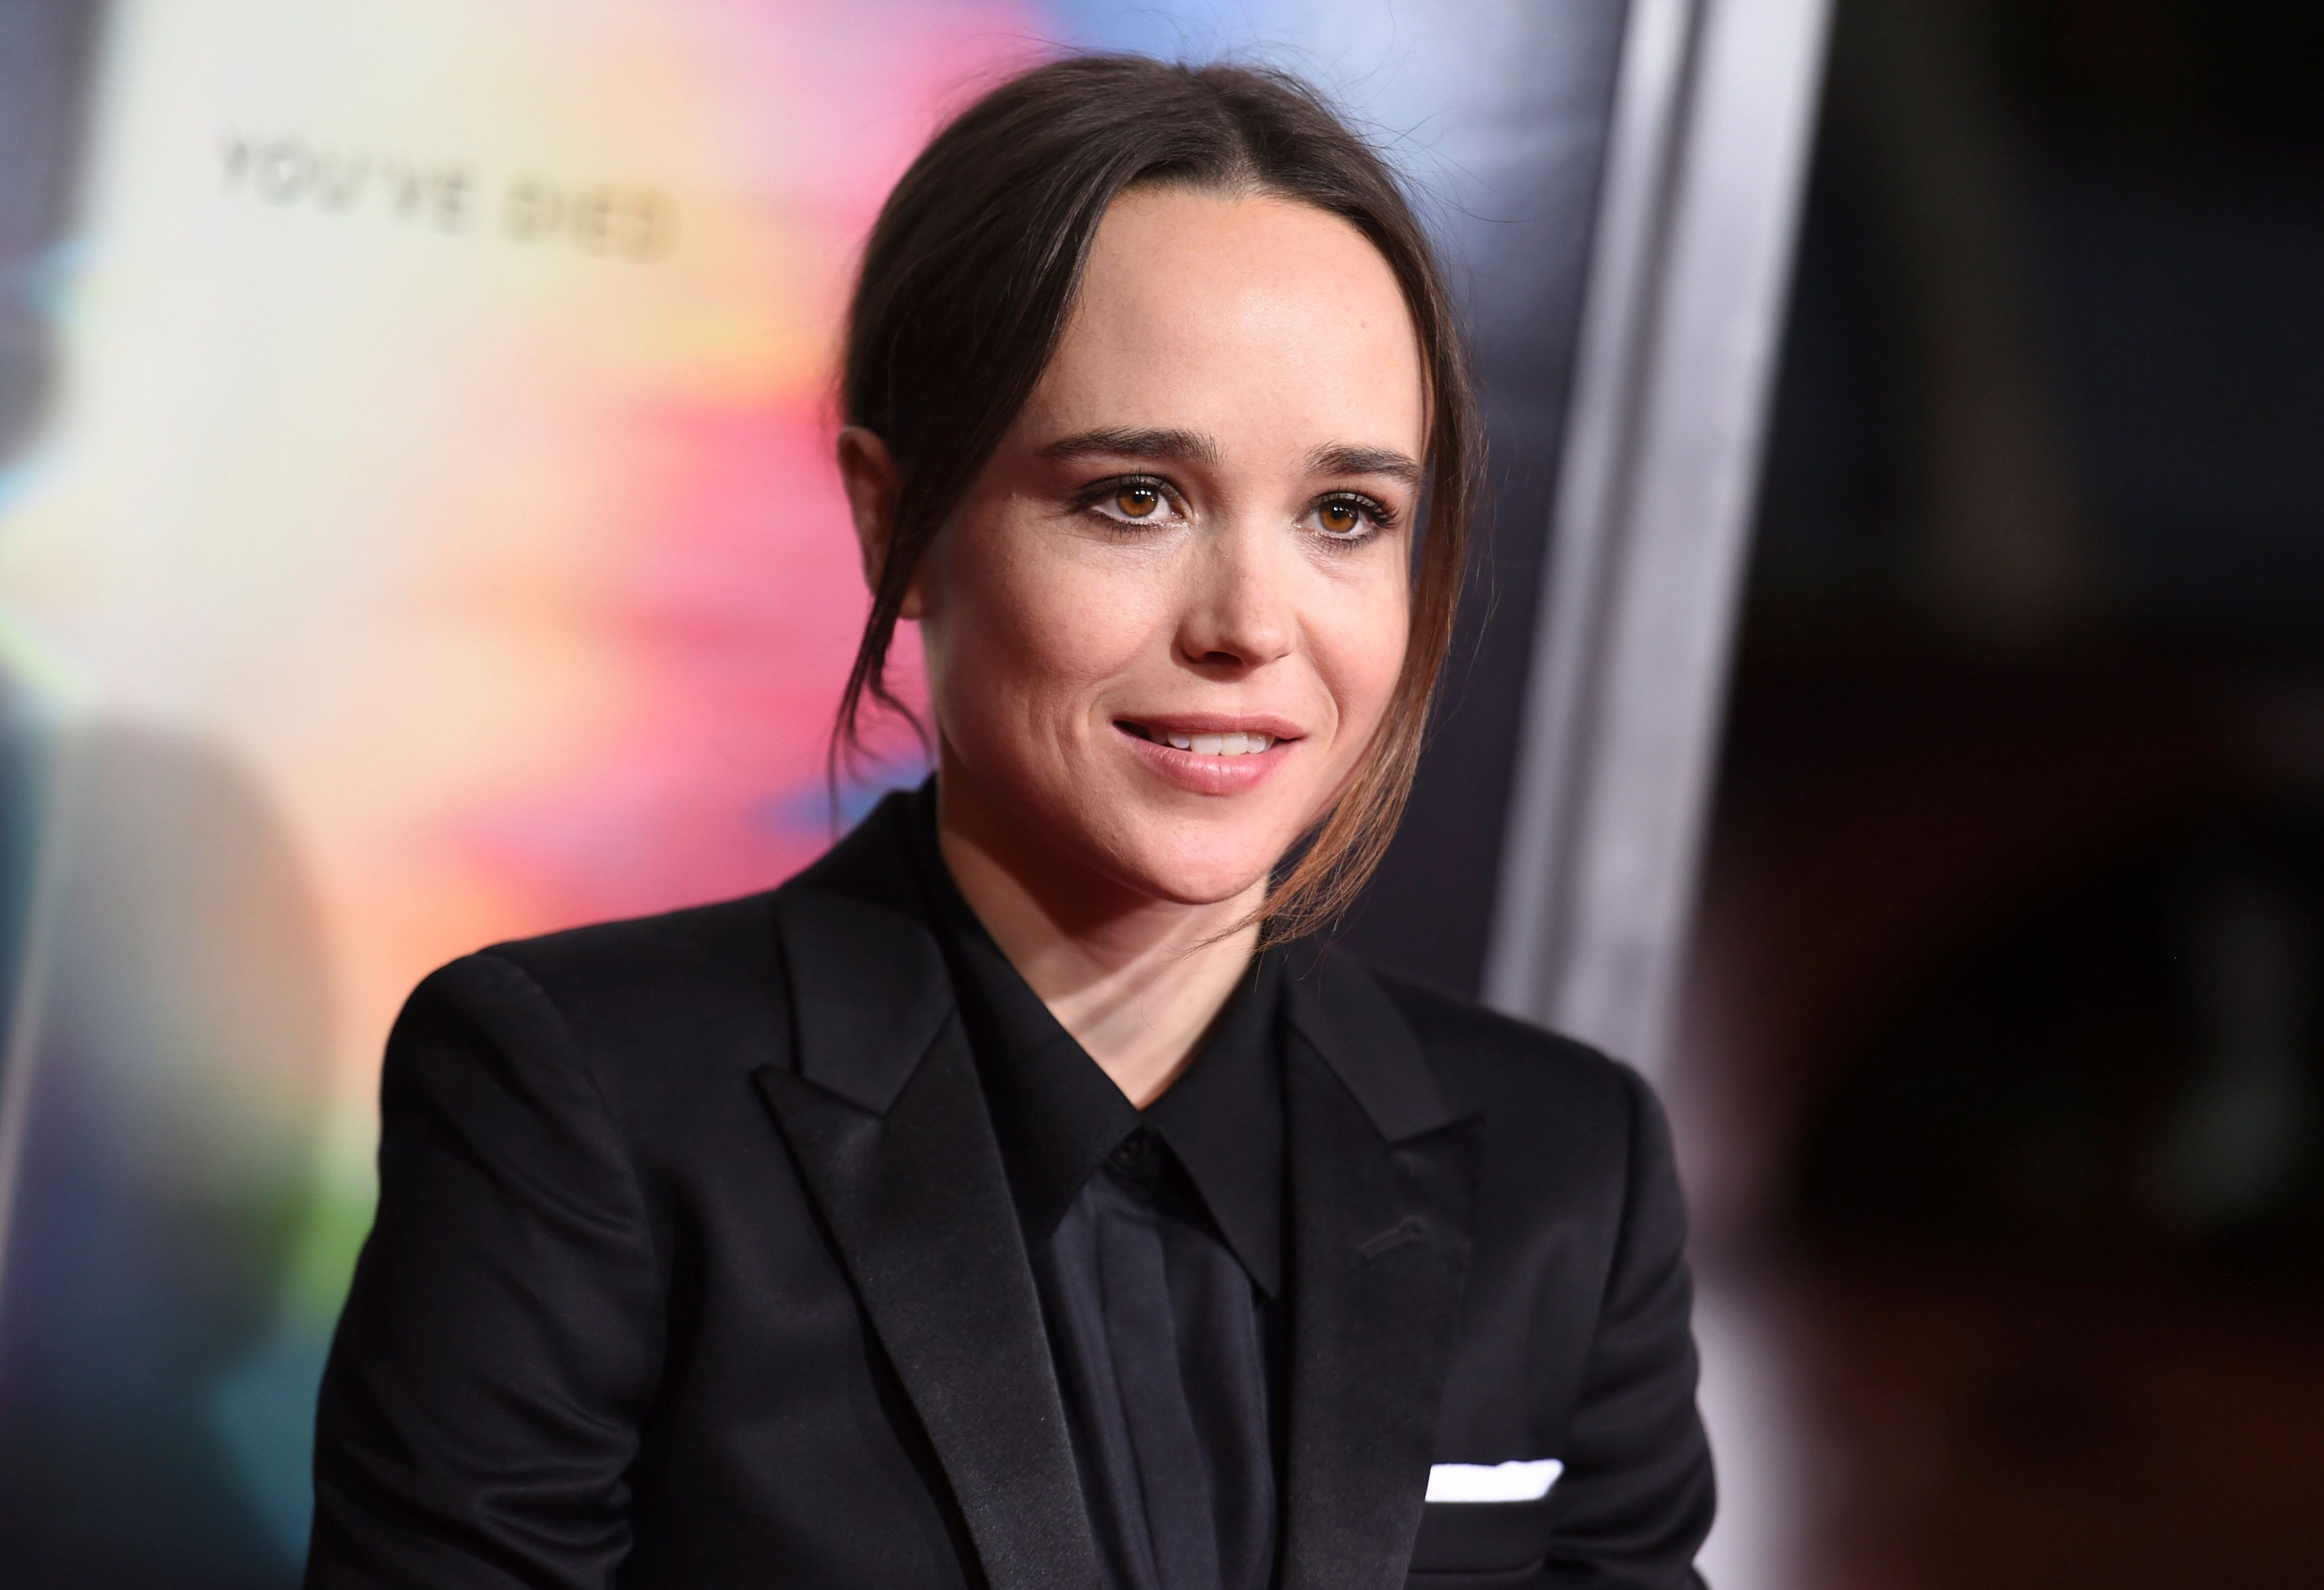 Ellen Page is calling out Chris Pratt for attending a church that doesn't appear to support same-sex relationships.